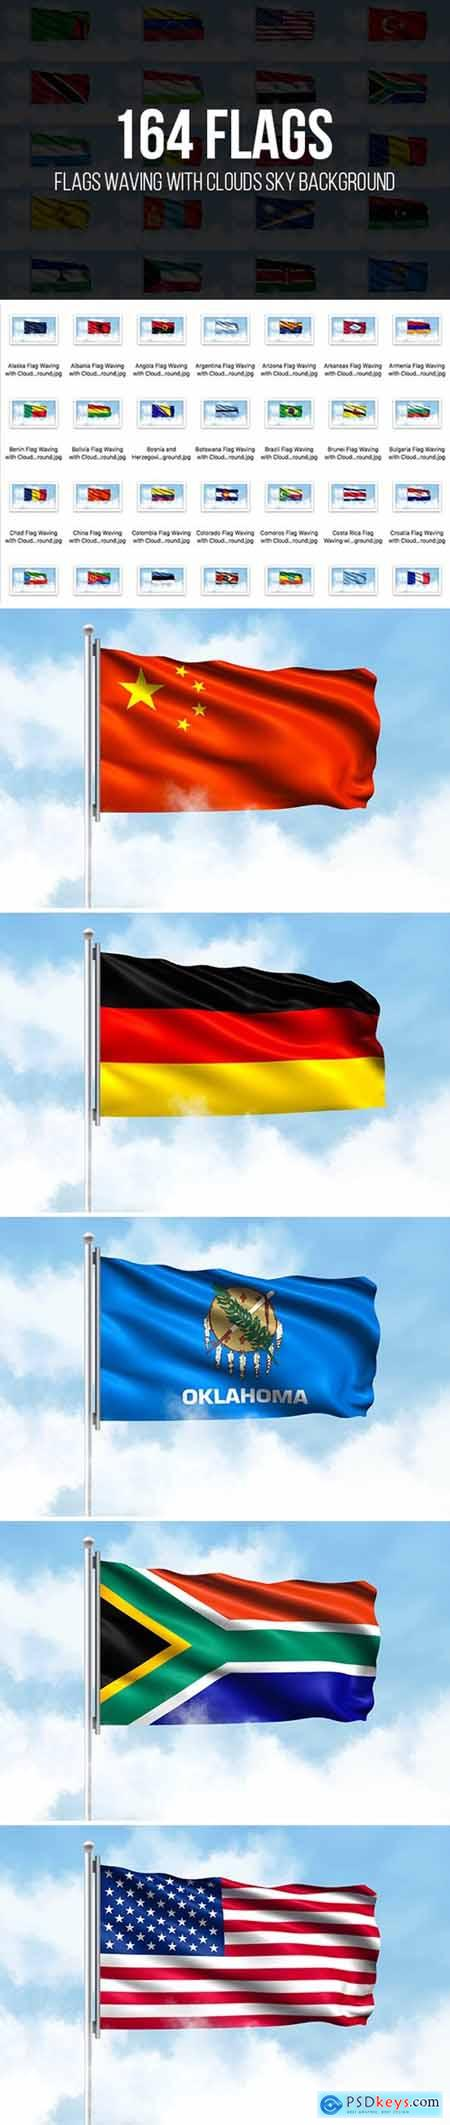 Flags Waving with Clouds Sky Background 4053638